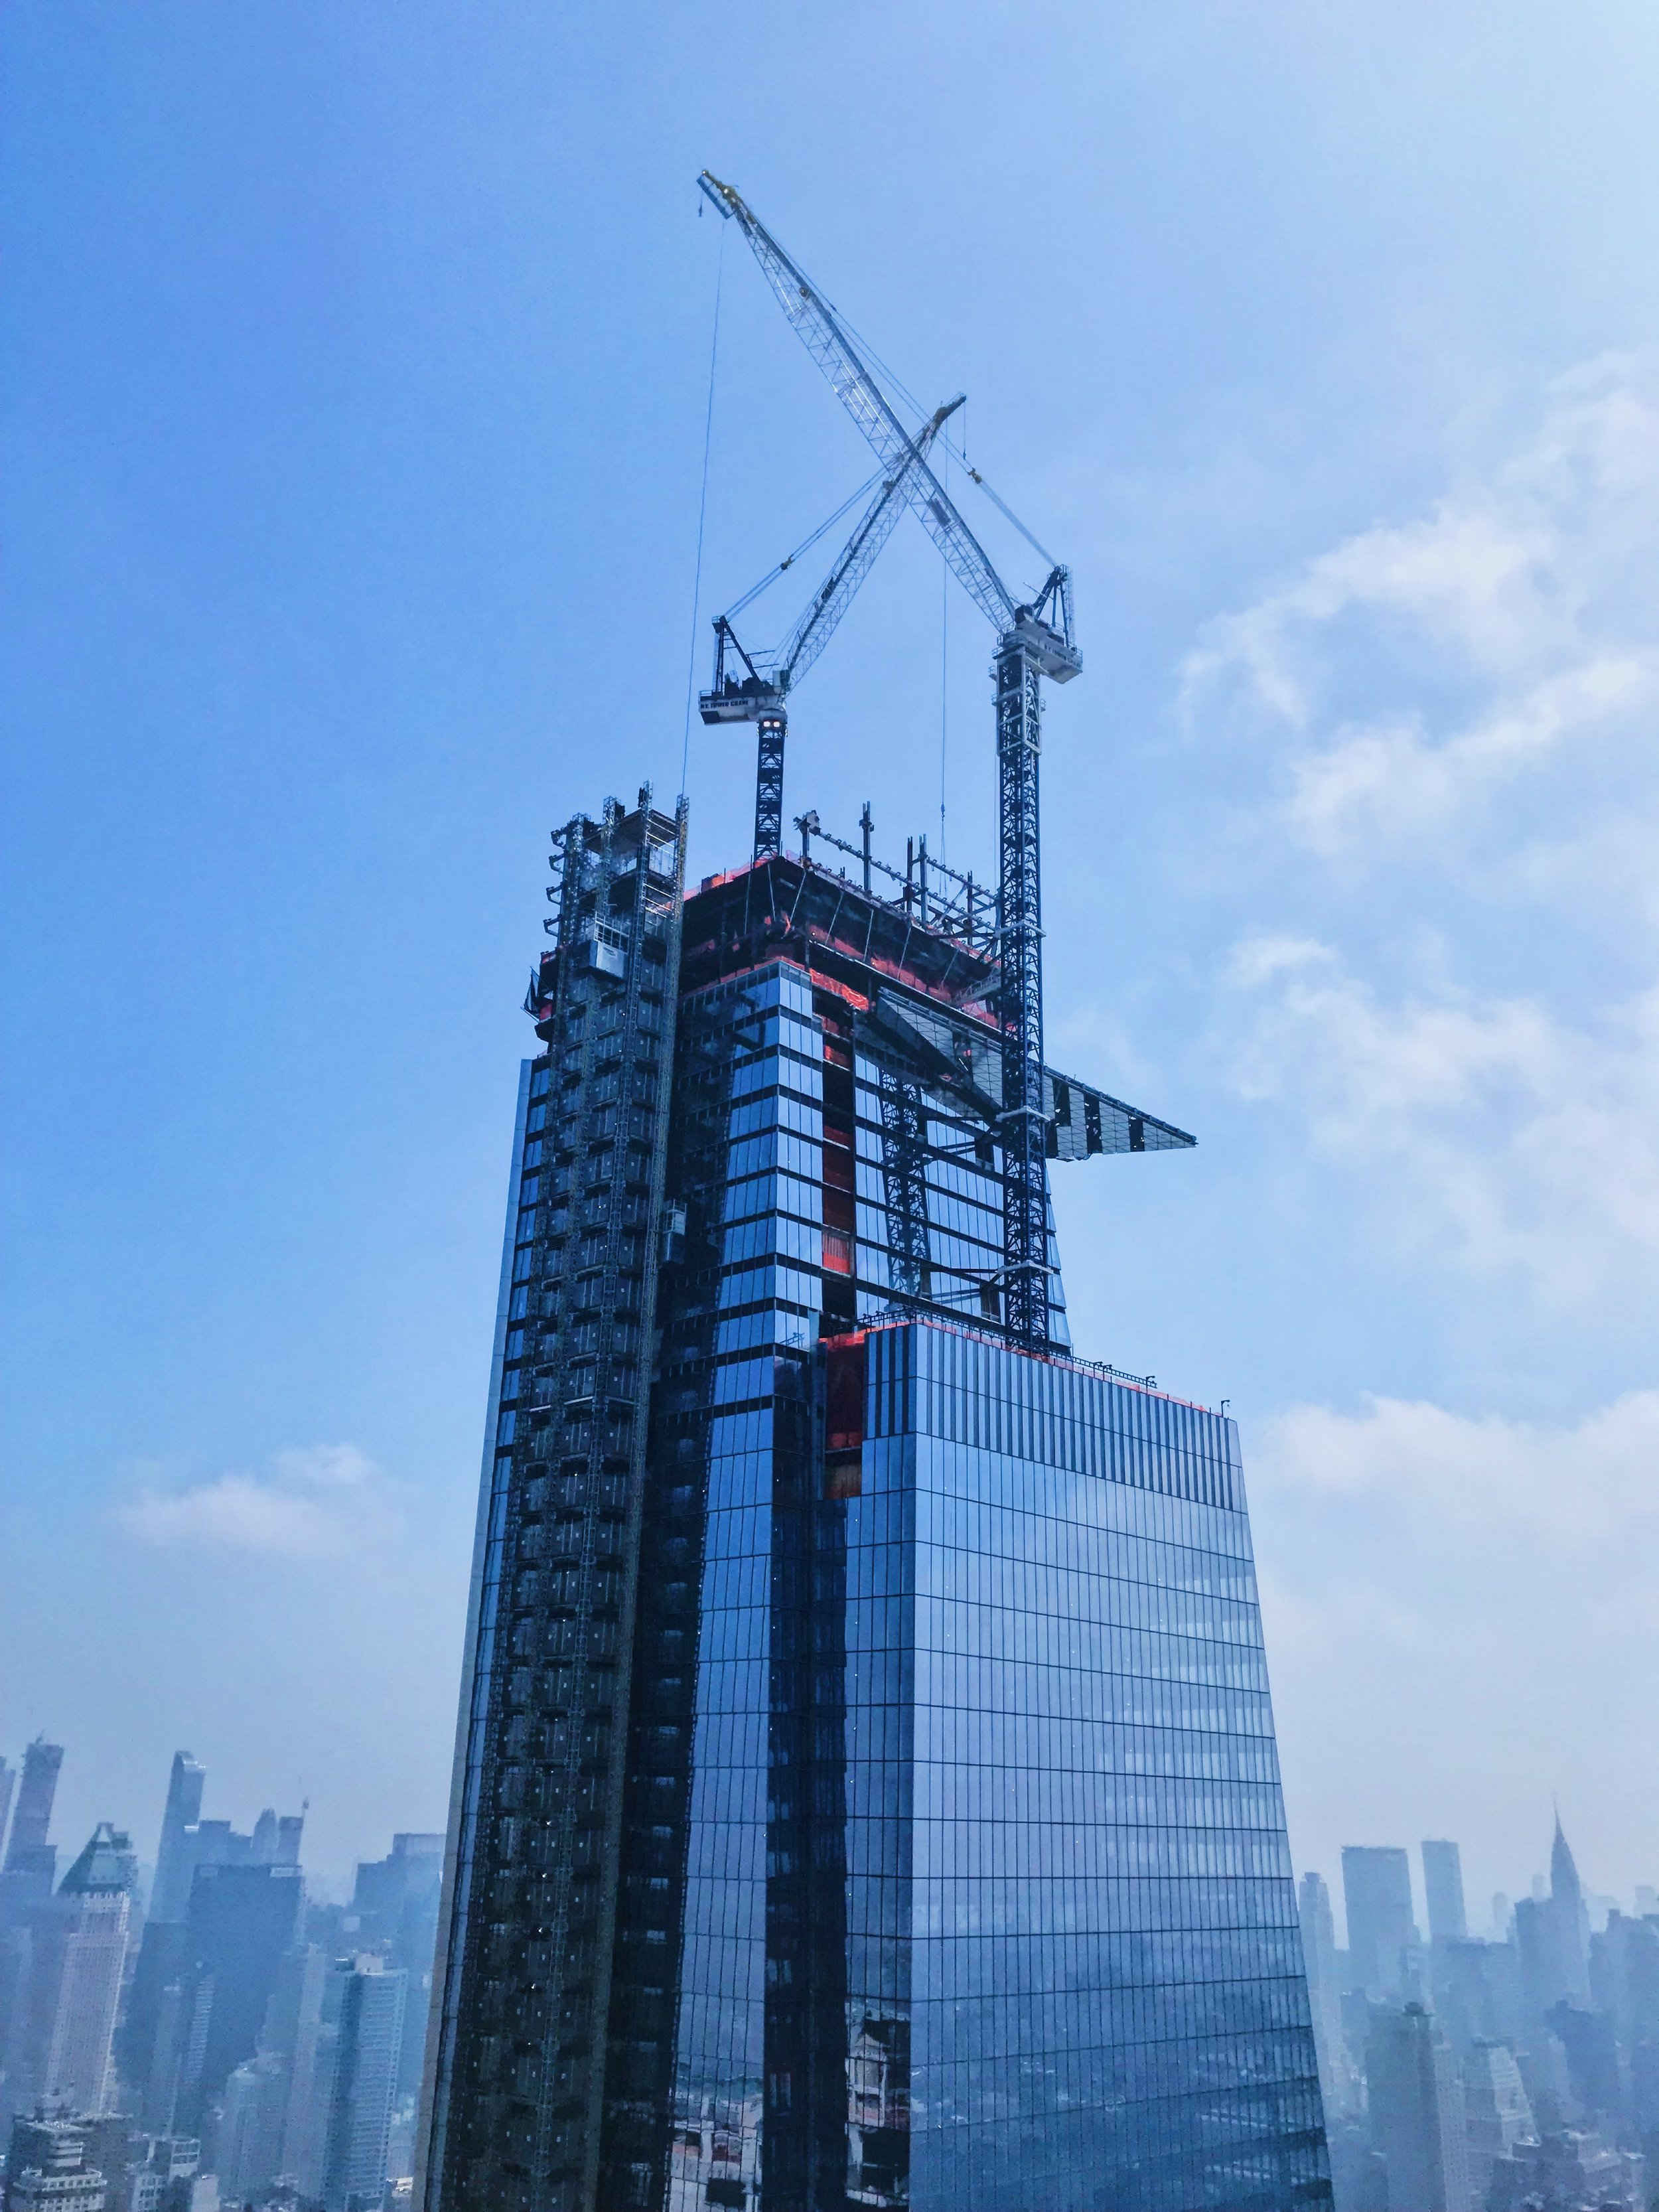 KPF's Tower A. They have started constructing the observation deck which will be the tallest vantage point on Manhattan.